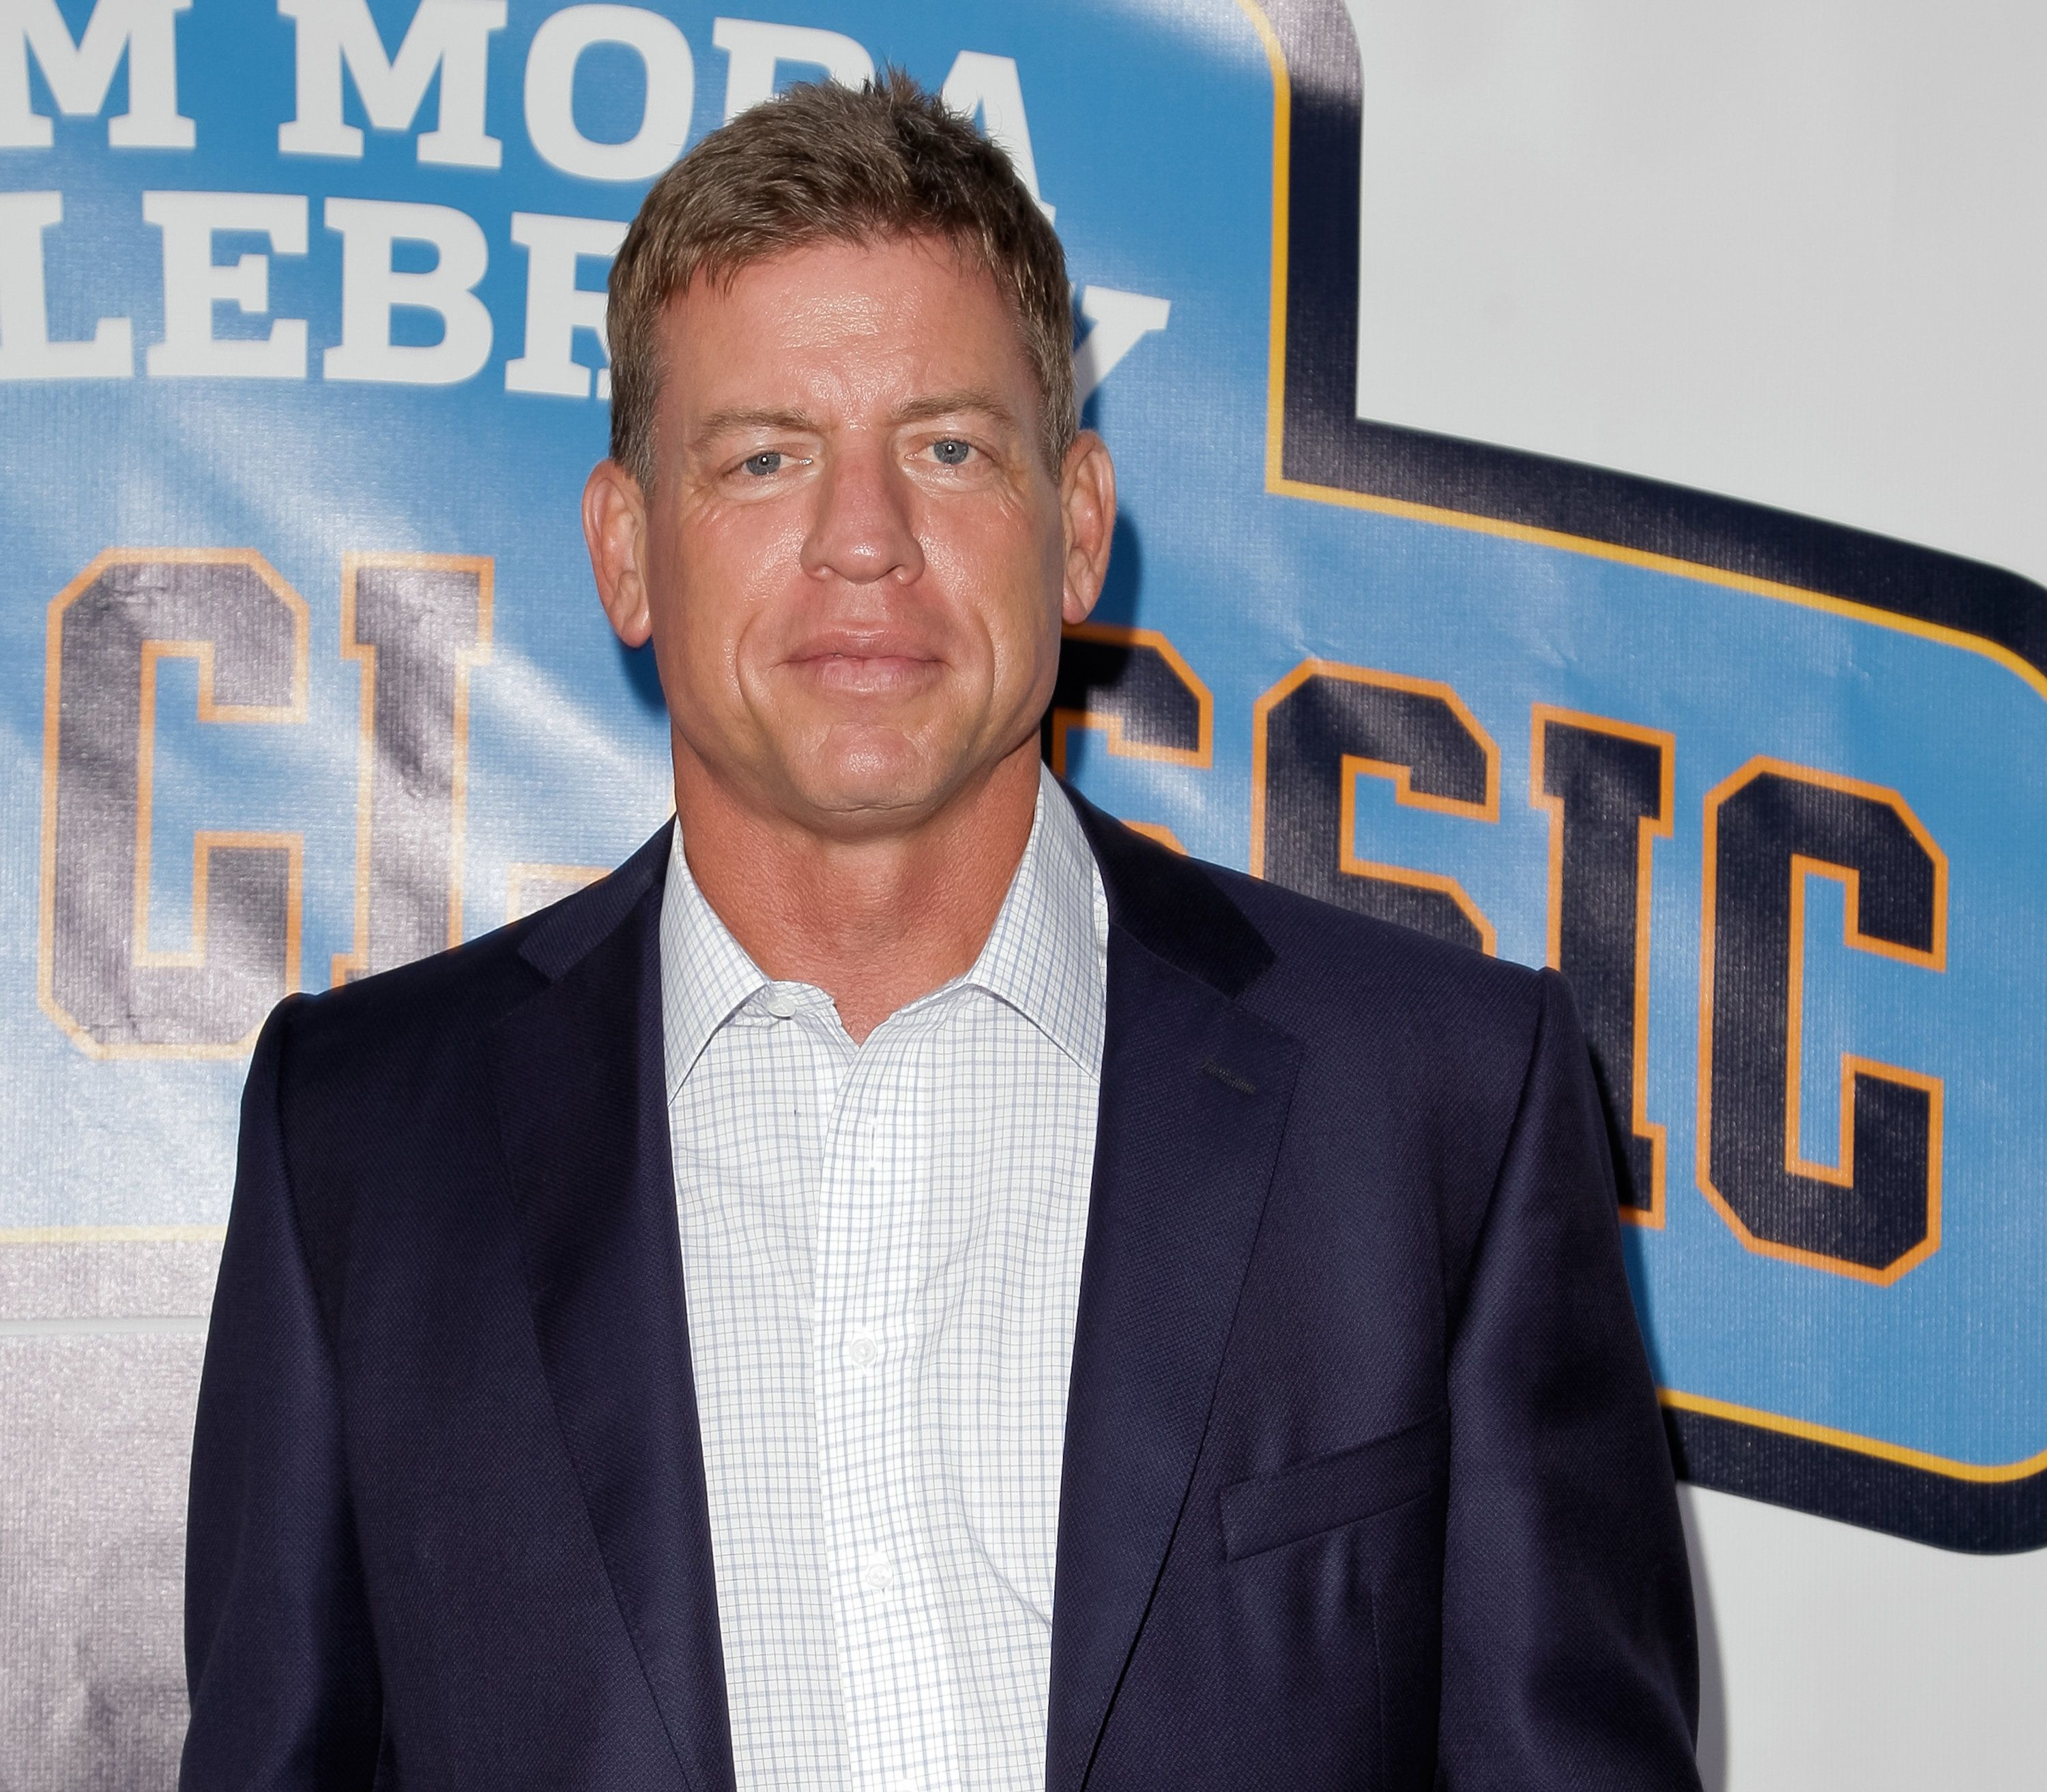 LOS ANGELES, CA - MAY 17:  Troy Aikman attends the 9th annual Jim Mora celebrity golf classic VIP cocktail reception at W Los Angeles  West Beverly Hills on May 17, 2015 in Los Angeles, California.  (Photo by Tibrina Hobson/FilmMagic)